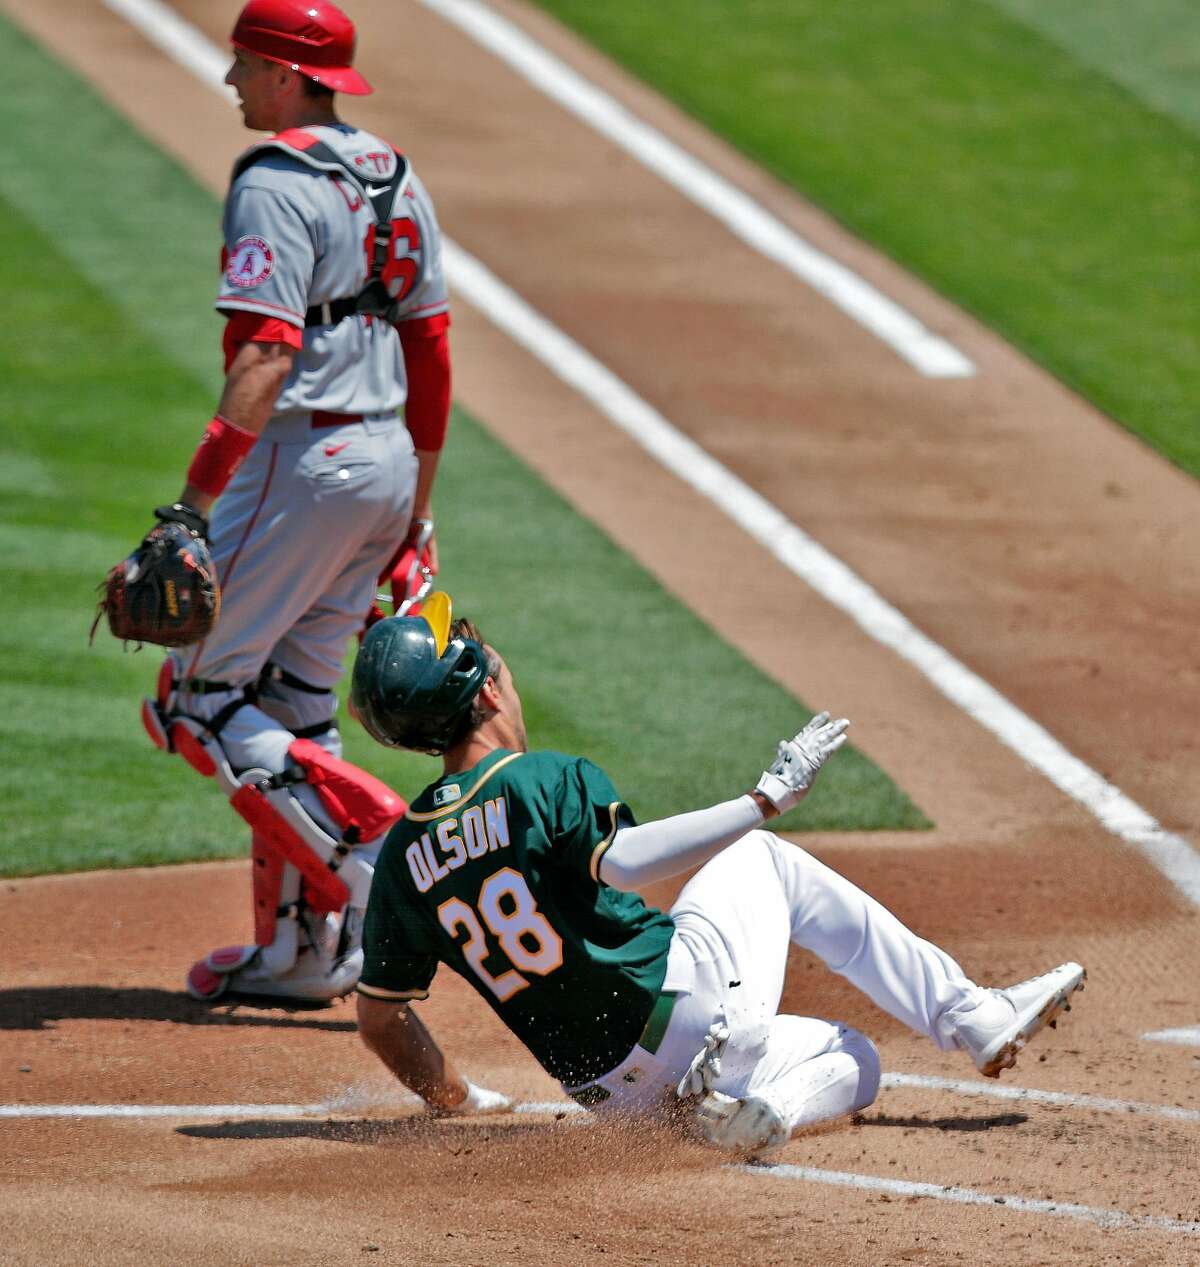 A's first baseman Matt Olson (28) scores safely ahead of the throw on a single by Robbie Grossman (8) in the first inning as the Oakland Athletics played the Los Angeles Angels of Anaheim at the Coliseum in Oakland, Calif., on Sunday, July 26, 2020.